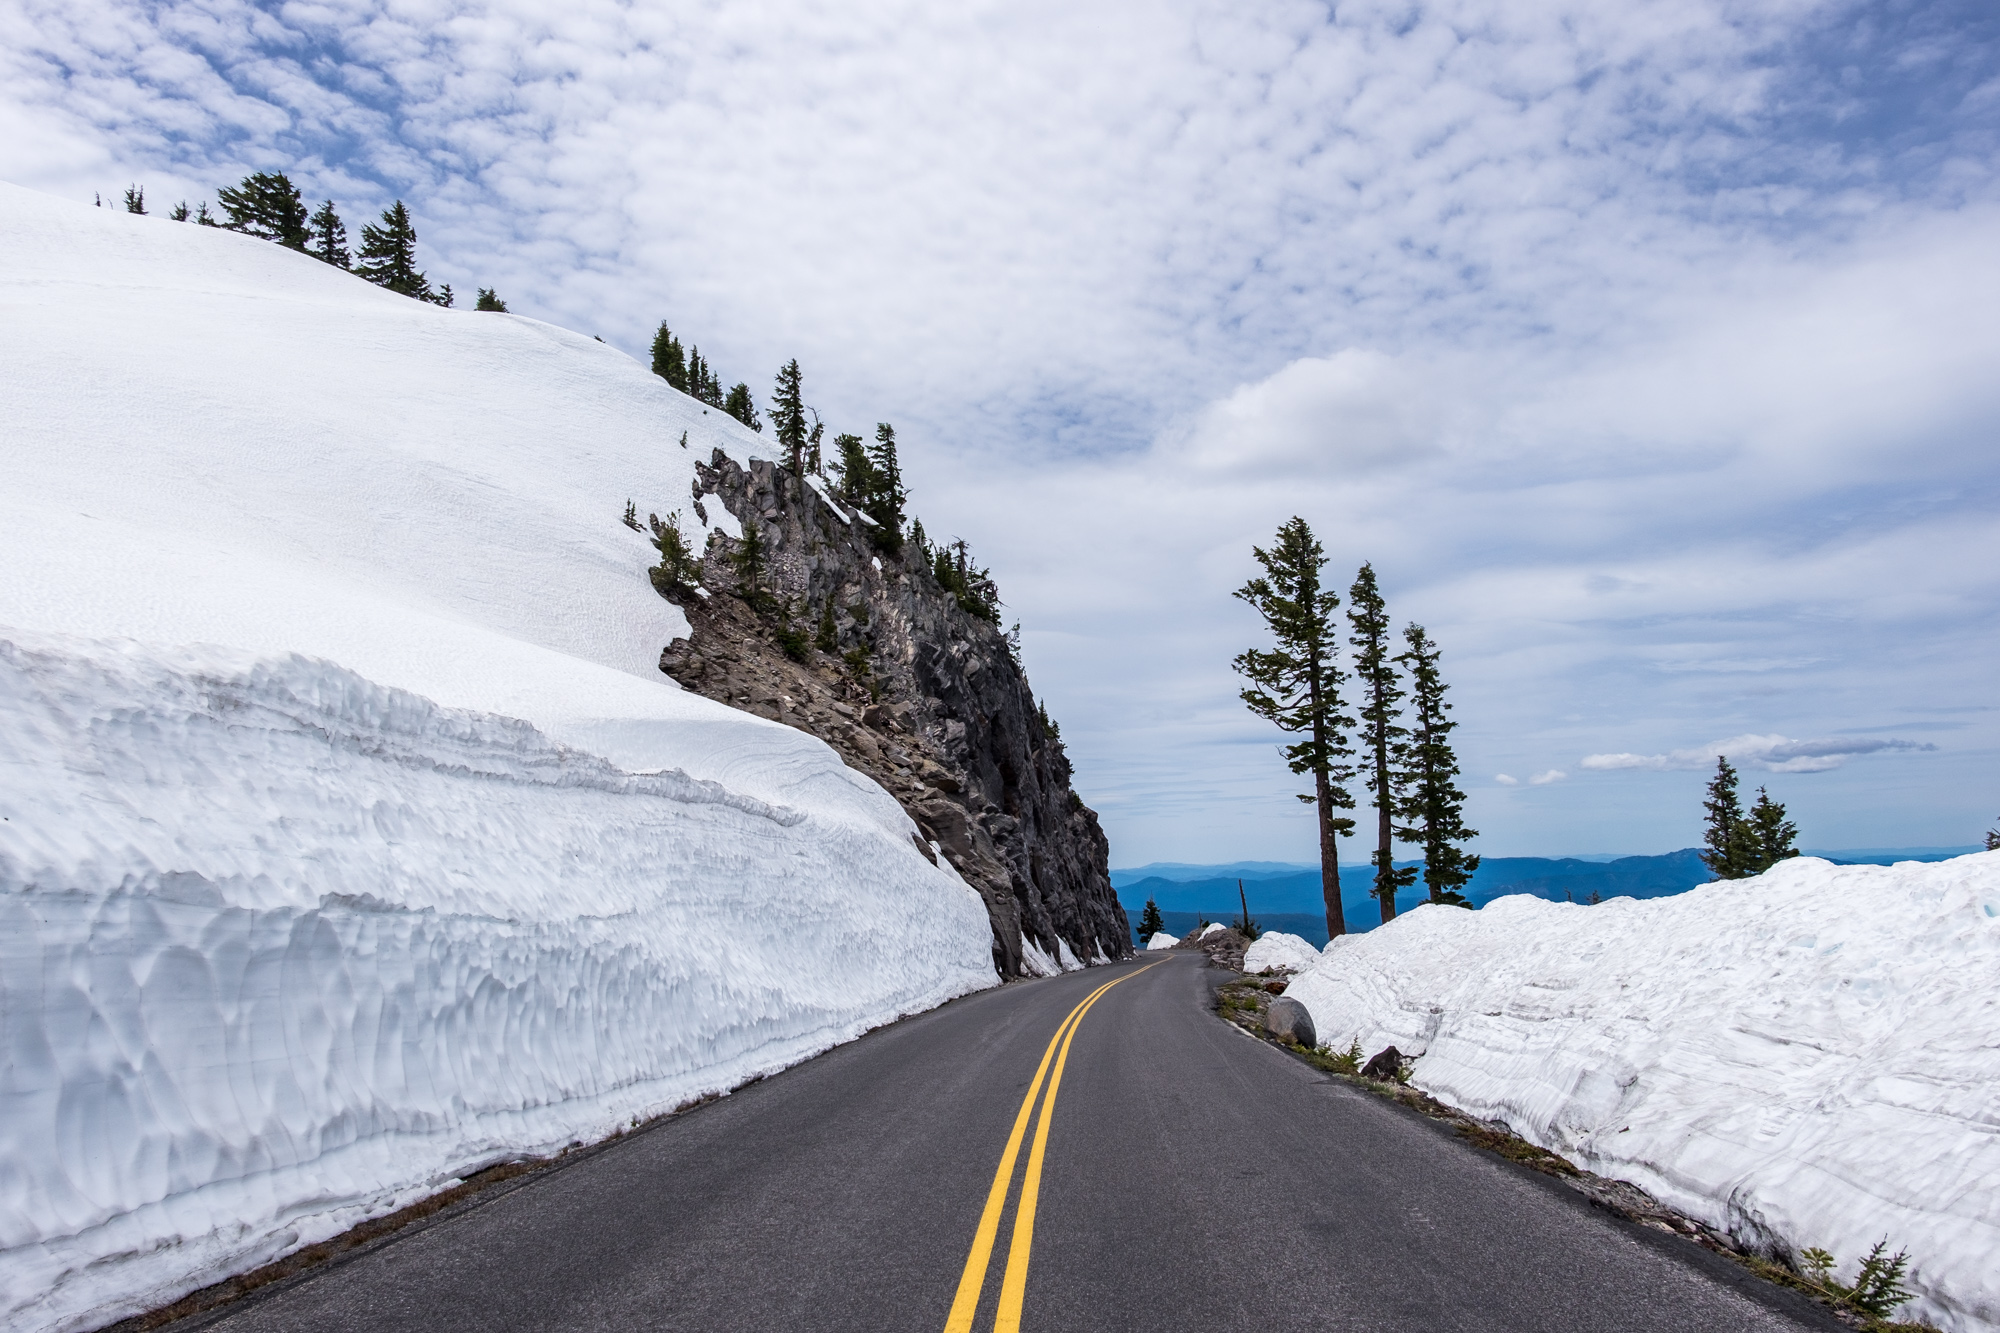 There was still quite a lot of snow along the rim when we visited.